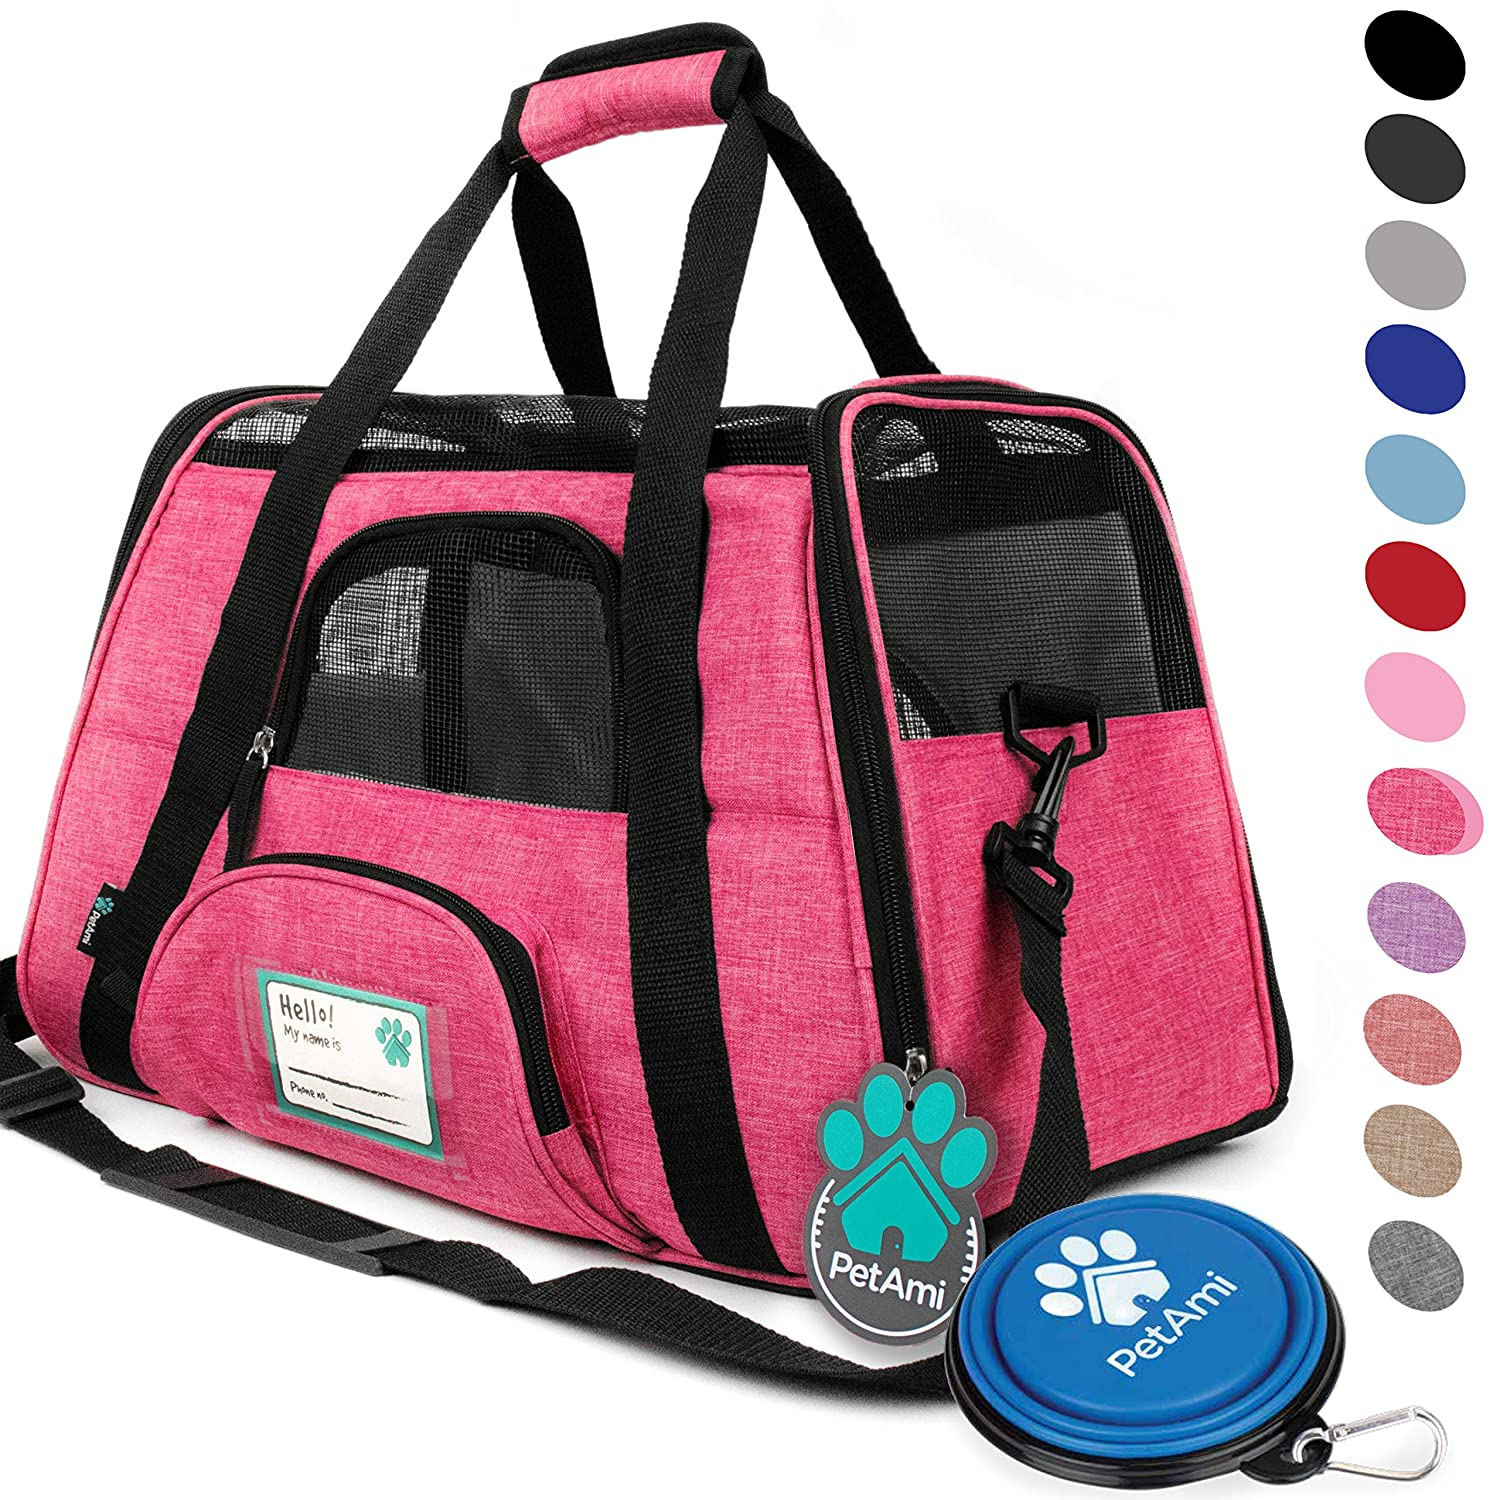 Heather Pink Large Heather Pink Large PetAmi Premium Airline Approved Soft-Sided Pet Travel Carrier   Ventilated, Comfortable Design with Safety Features   Ideal for Small to Medium Sized Cats, Dogs, and Pets (Large, Heather Pink)